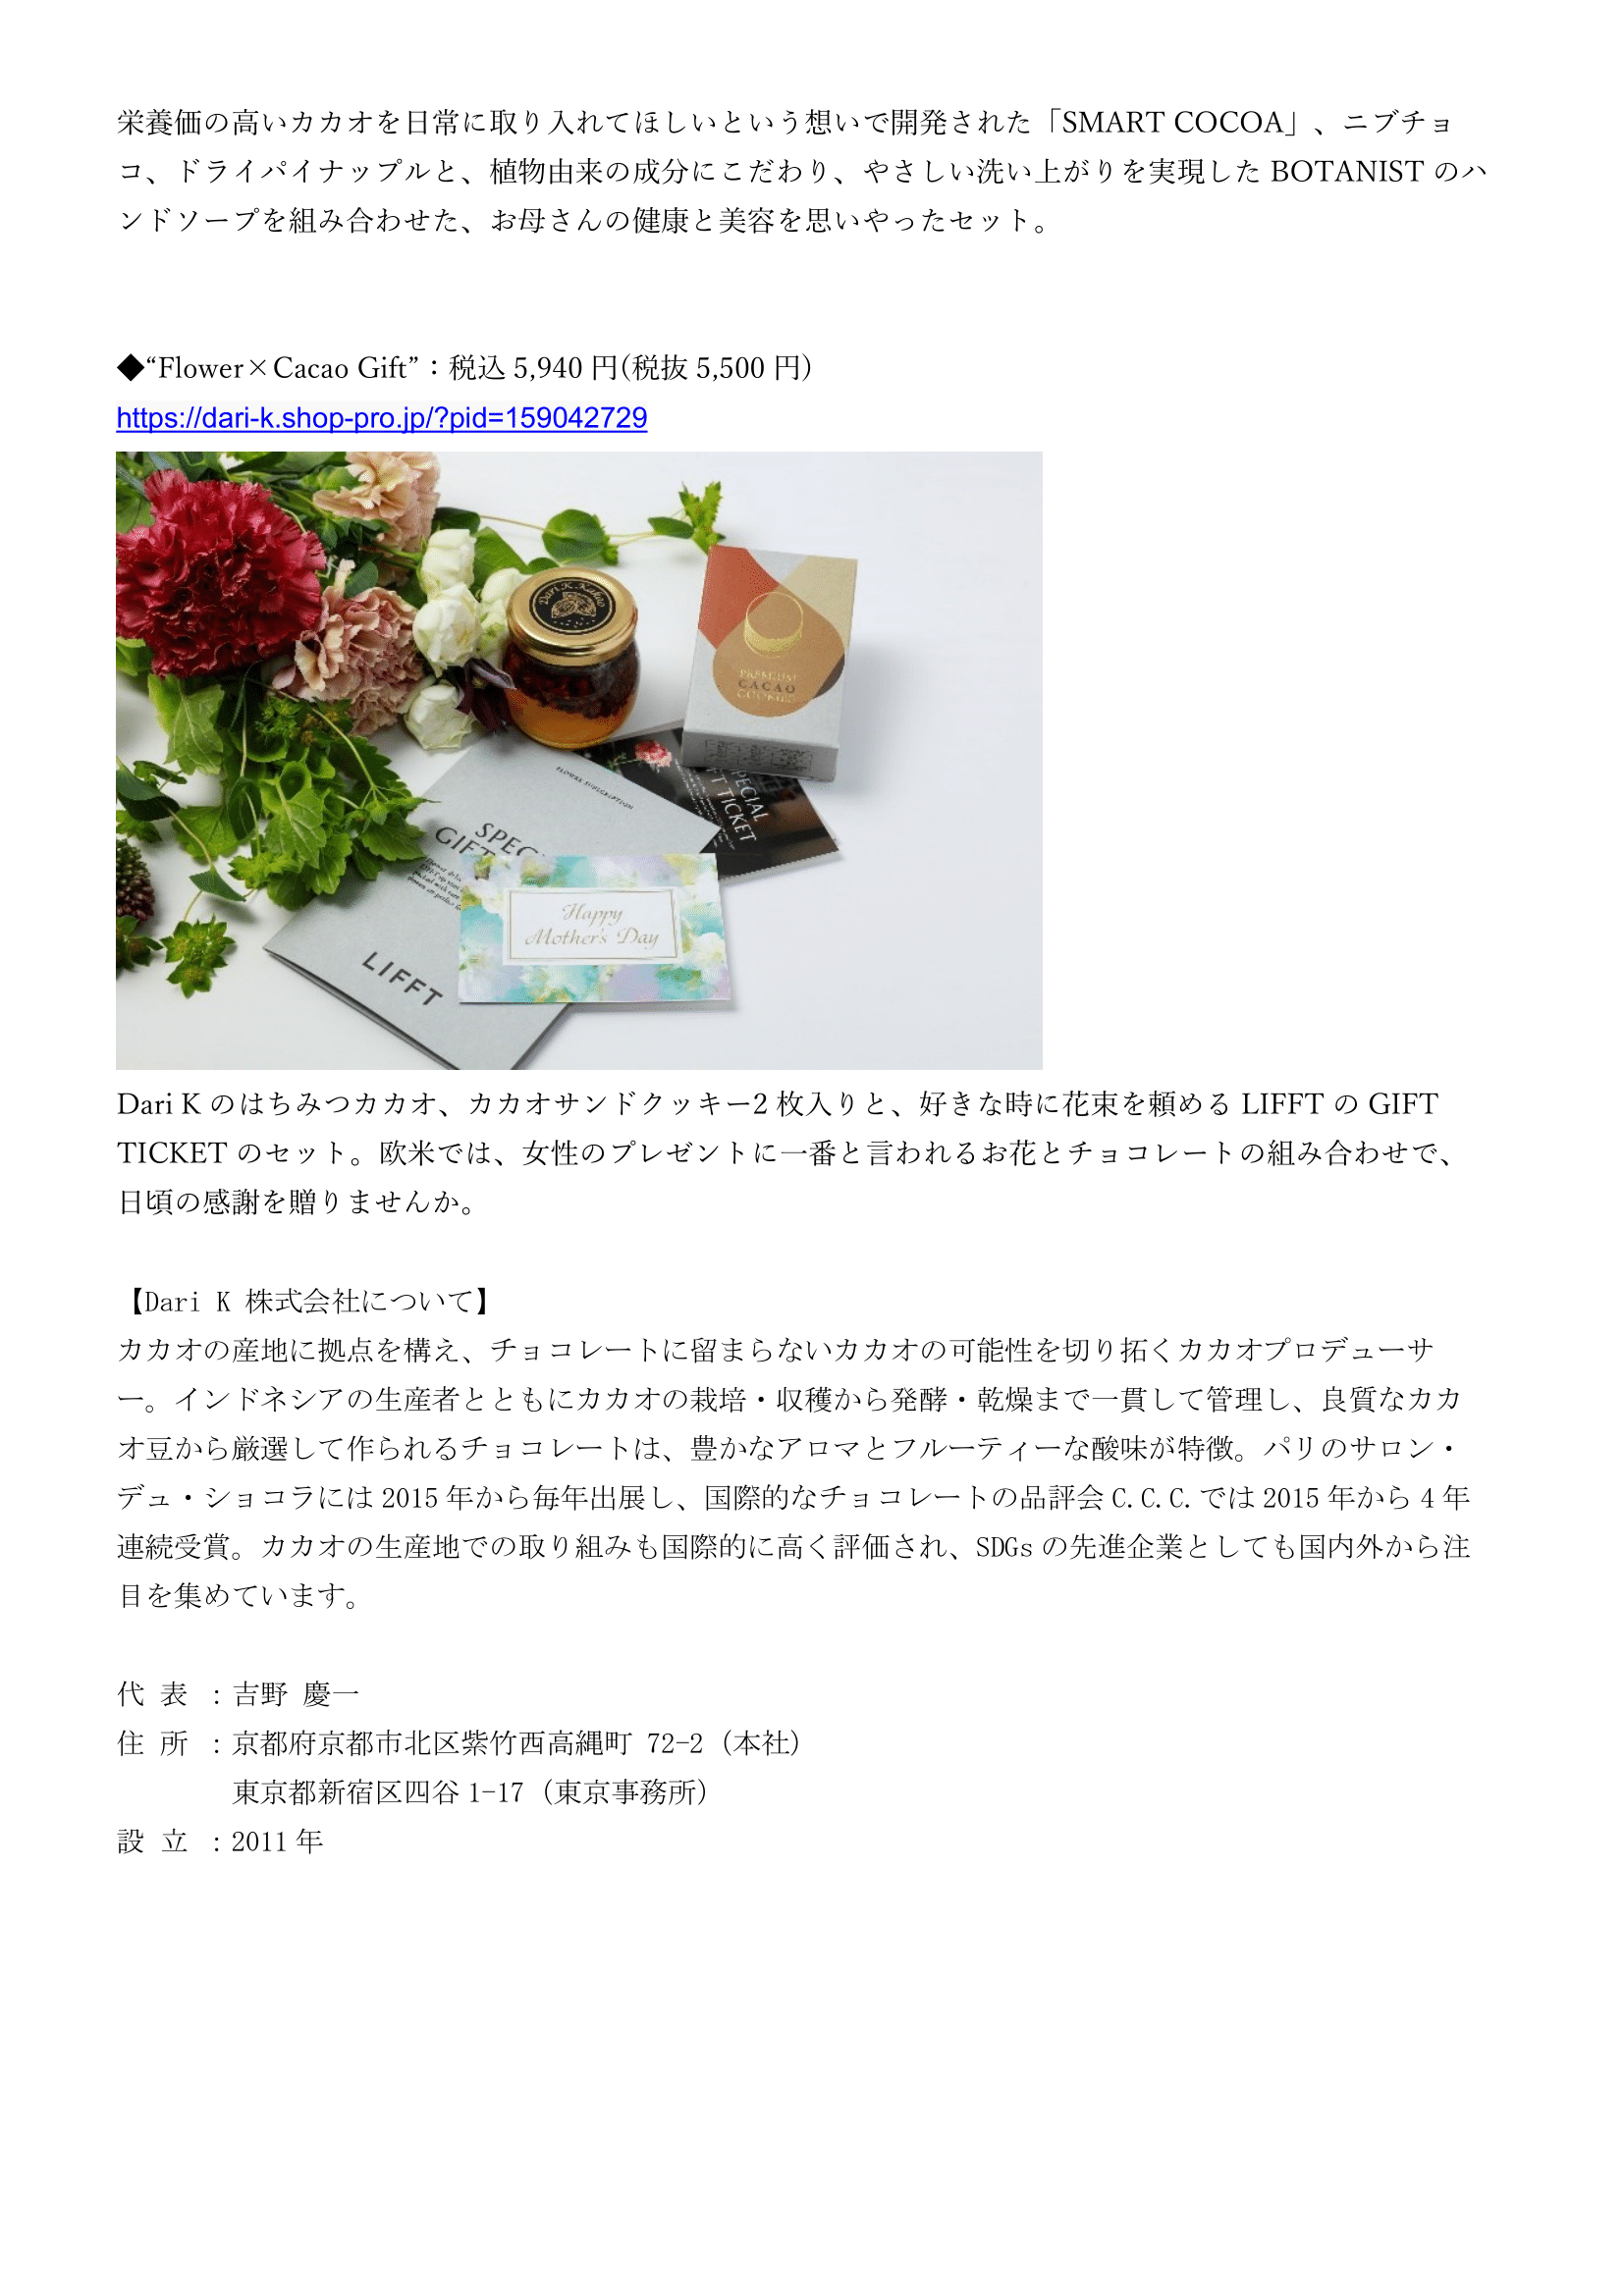 Press Release210423-母の日コラボギフト-2